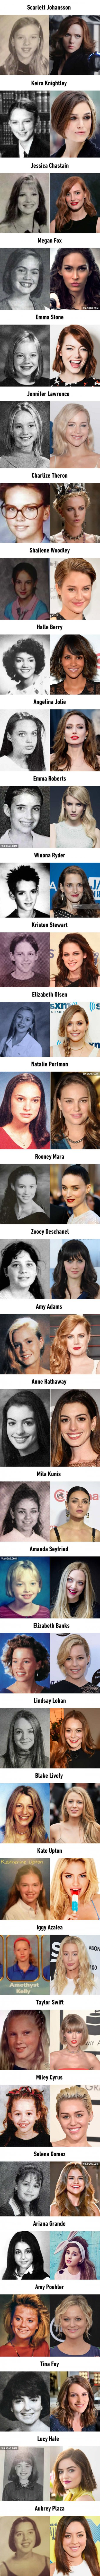 34 Female Celebrities' Yearbook Photos Prove There's Still Hope